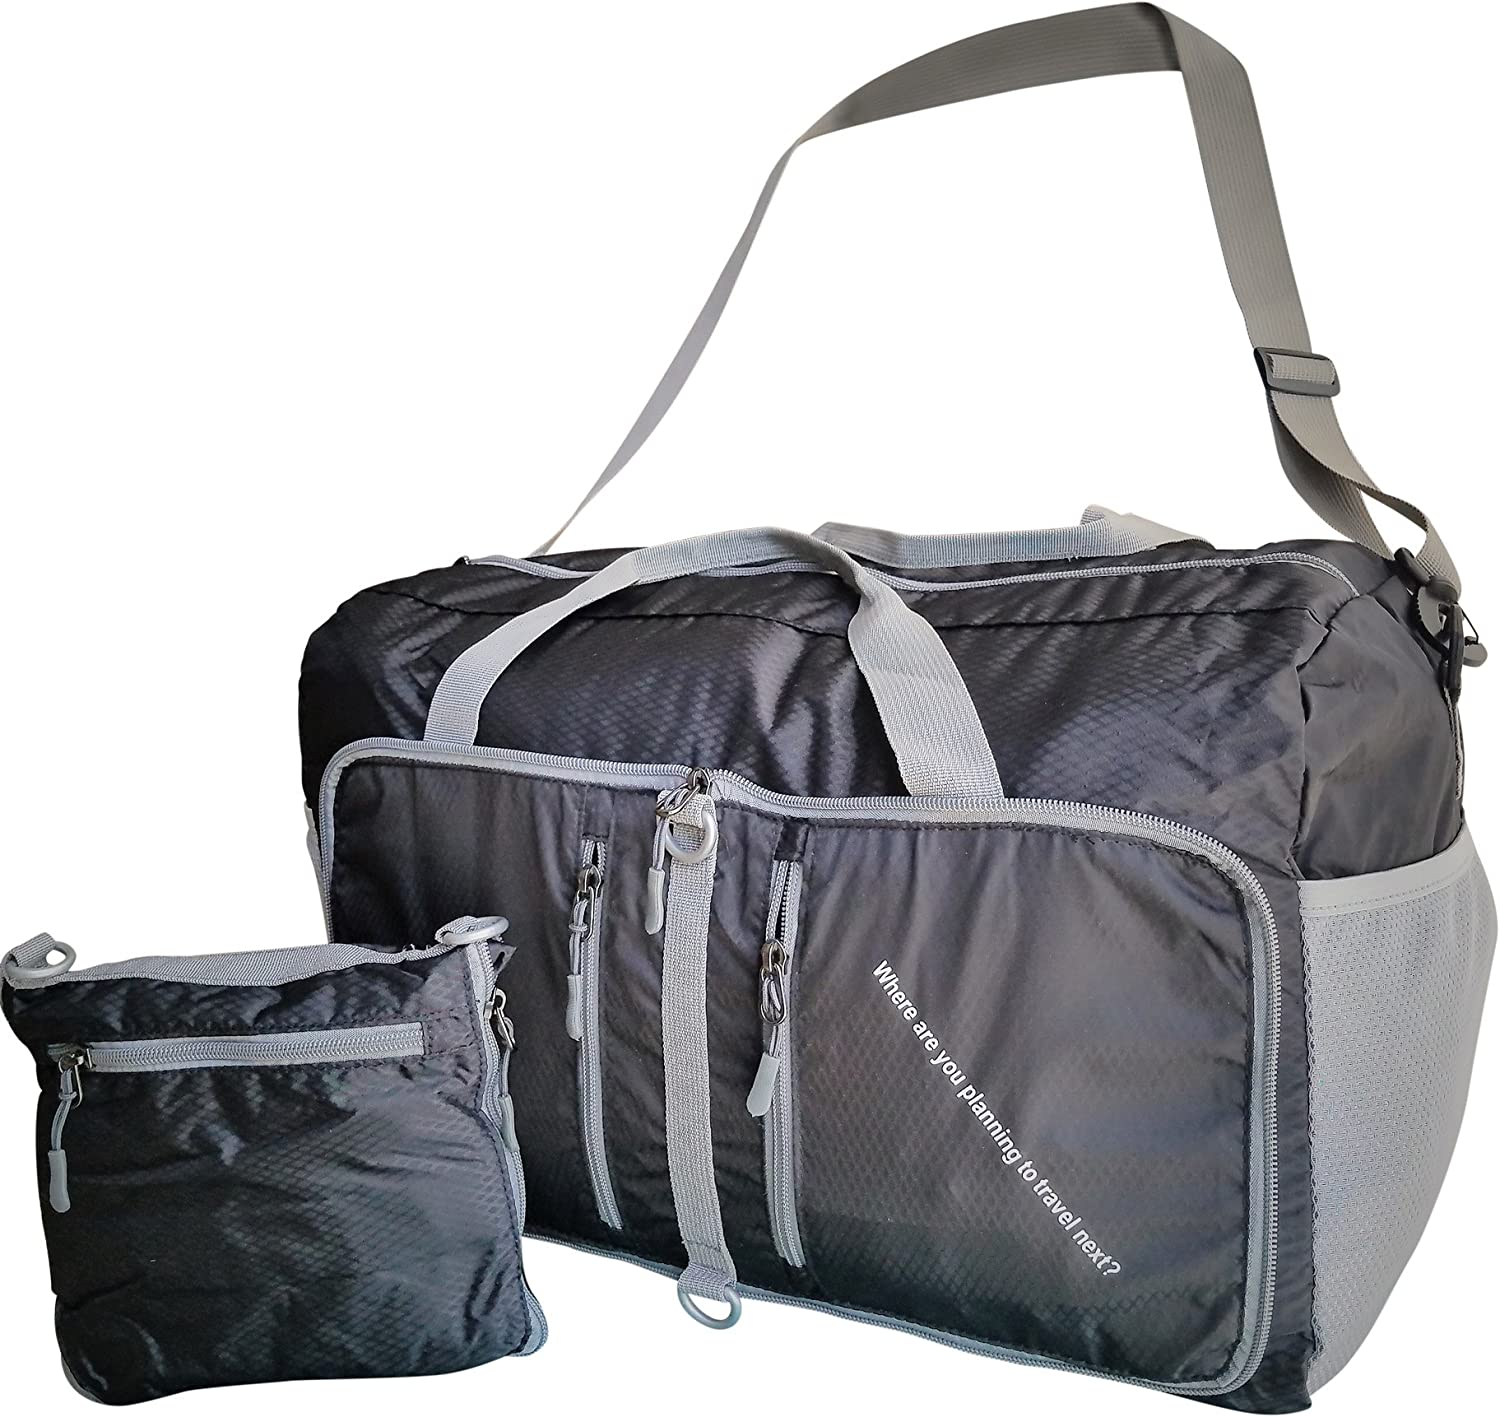 Fordable Duffel for Men & Women Teenagers Sports Gym Carry-on Luggage - Lightweight Travel Duffel Bag plus 2 Multi-functional Shoe Packing Cubes